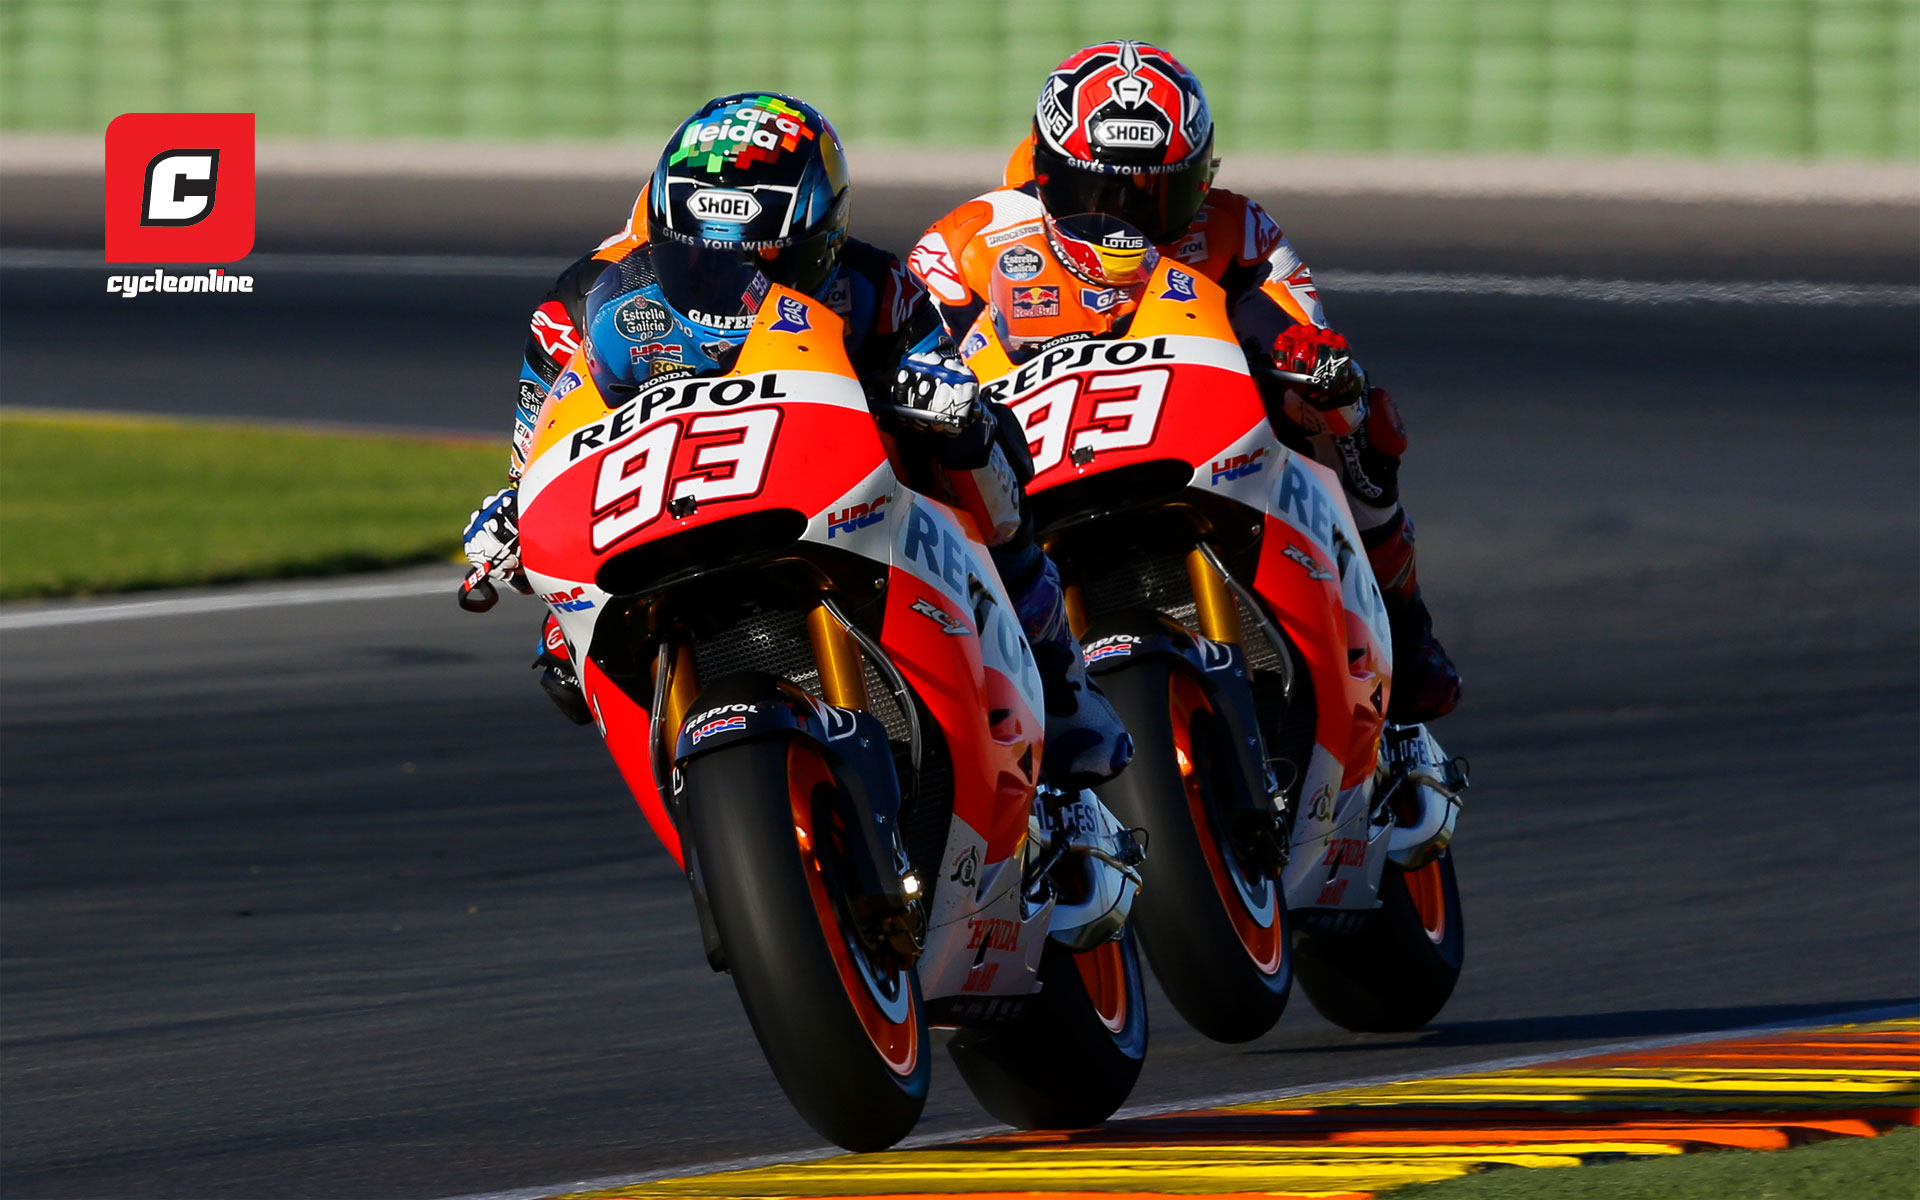 Wednesday wallpaper marquez brothers cycleonline voltagebd Images